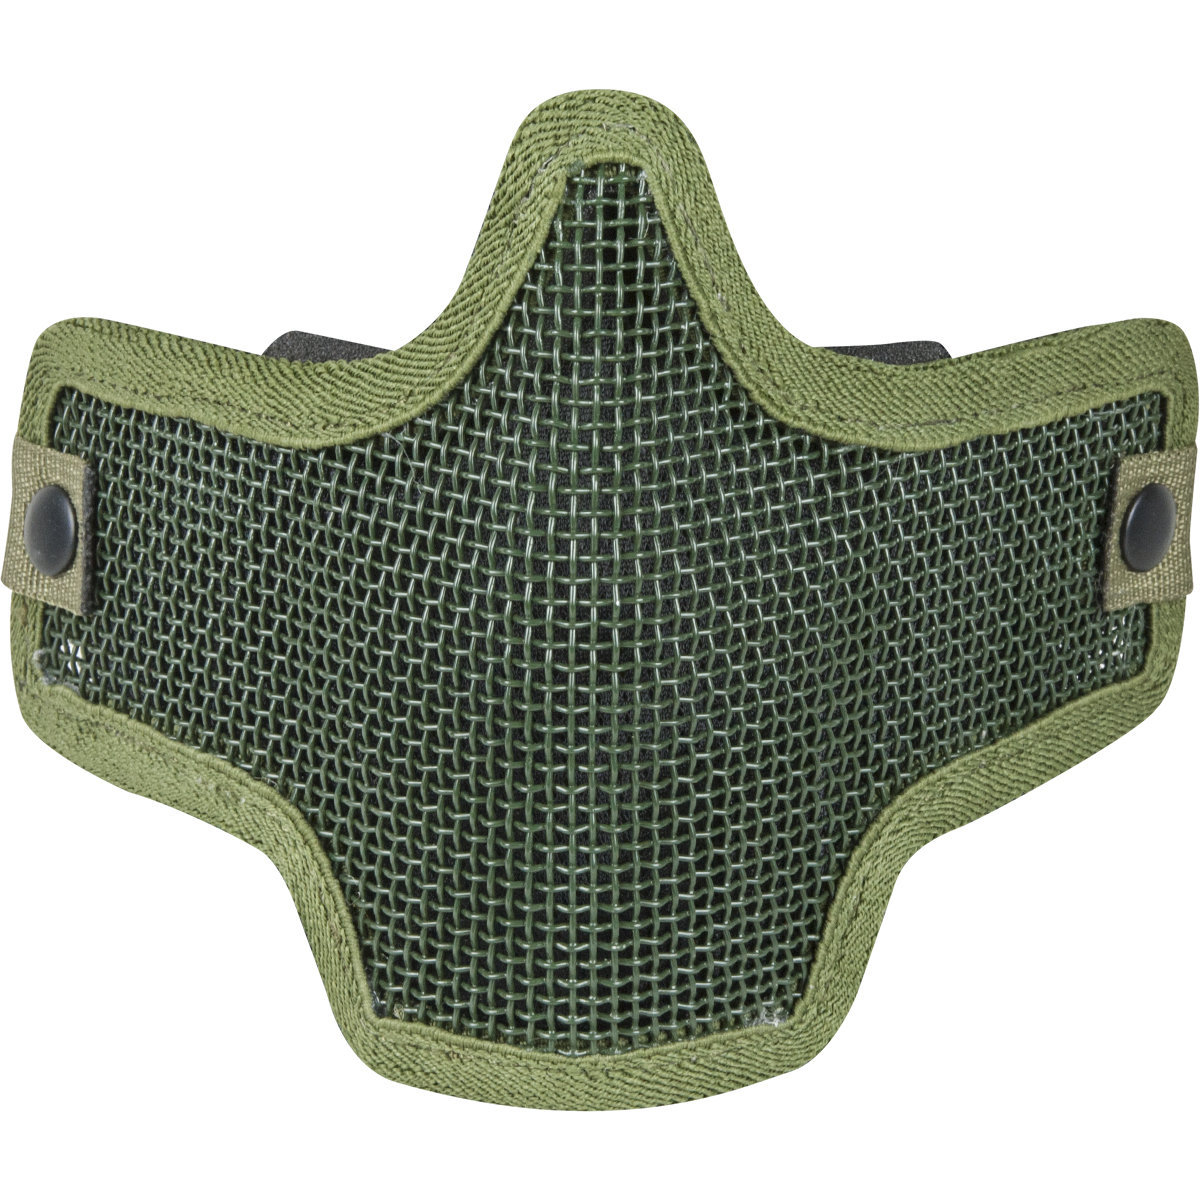 View larger image of Valken Kilo Airsoft Mesh Mask